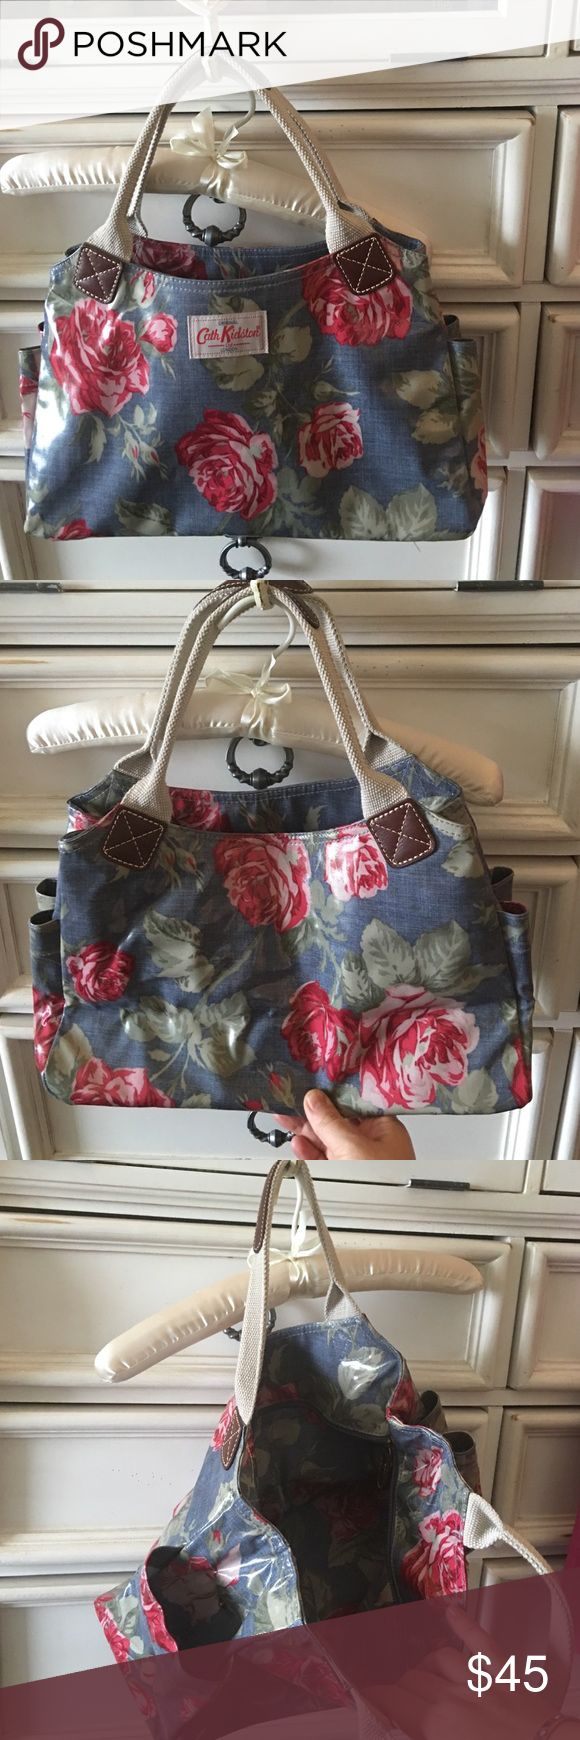 Catch Kidston flower bag Pretty flower bag coated for easy cleaning, very popular in United Kingdom. Like new bought in London last summer. Cath kidston Bags Satchels